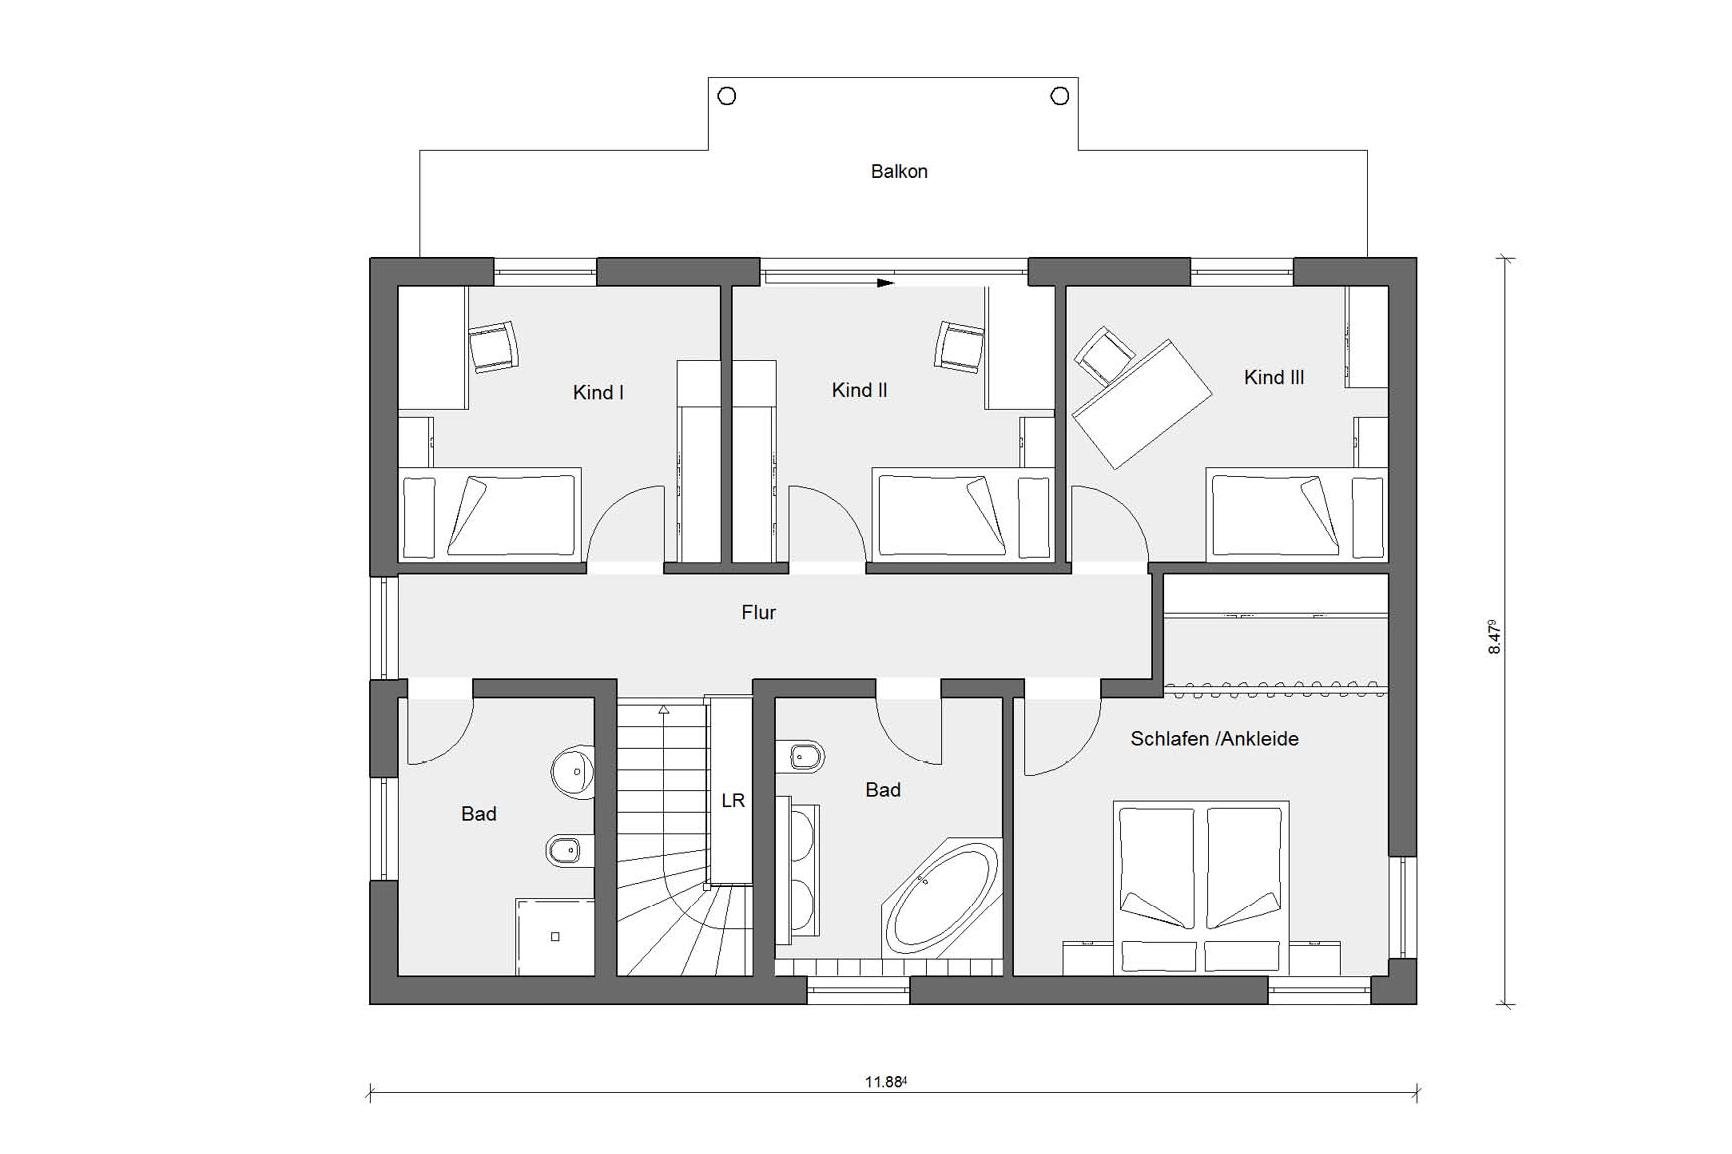 Attic floor plan prefabricated house with 3 children's rooms E 20-165.6